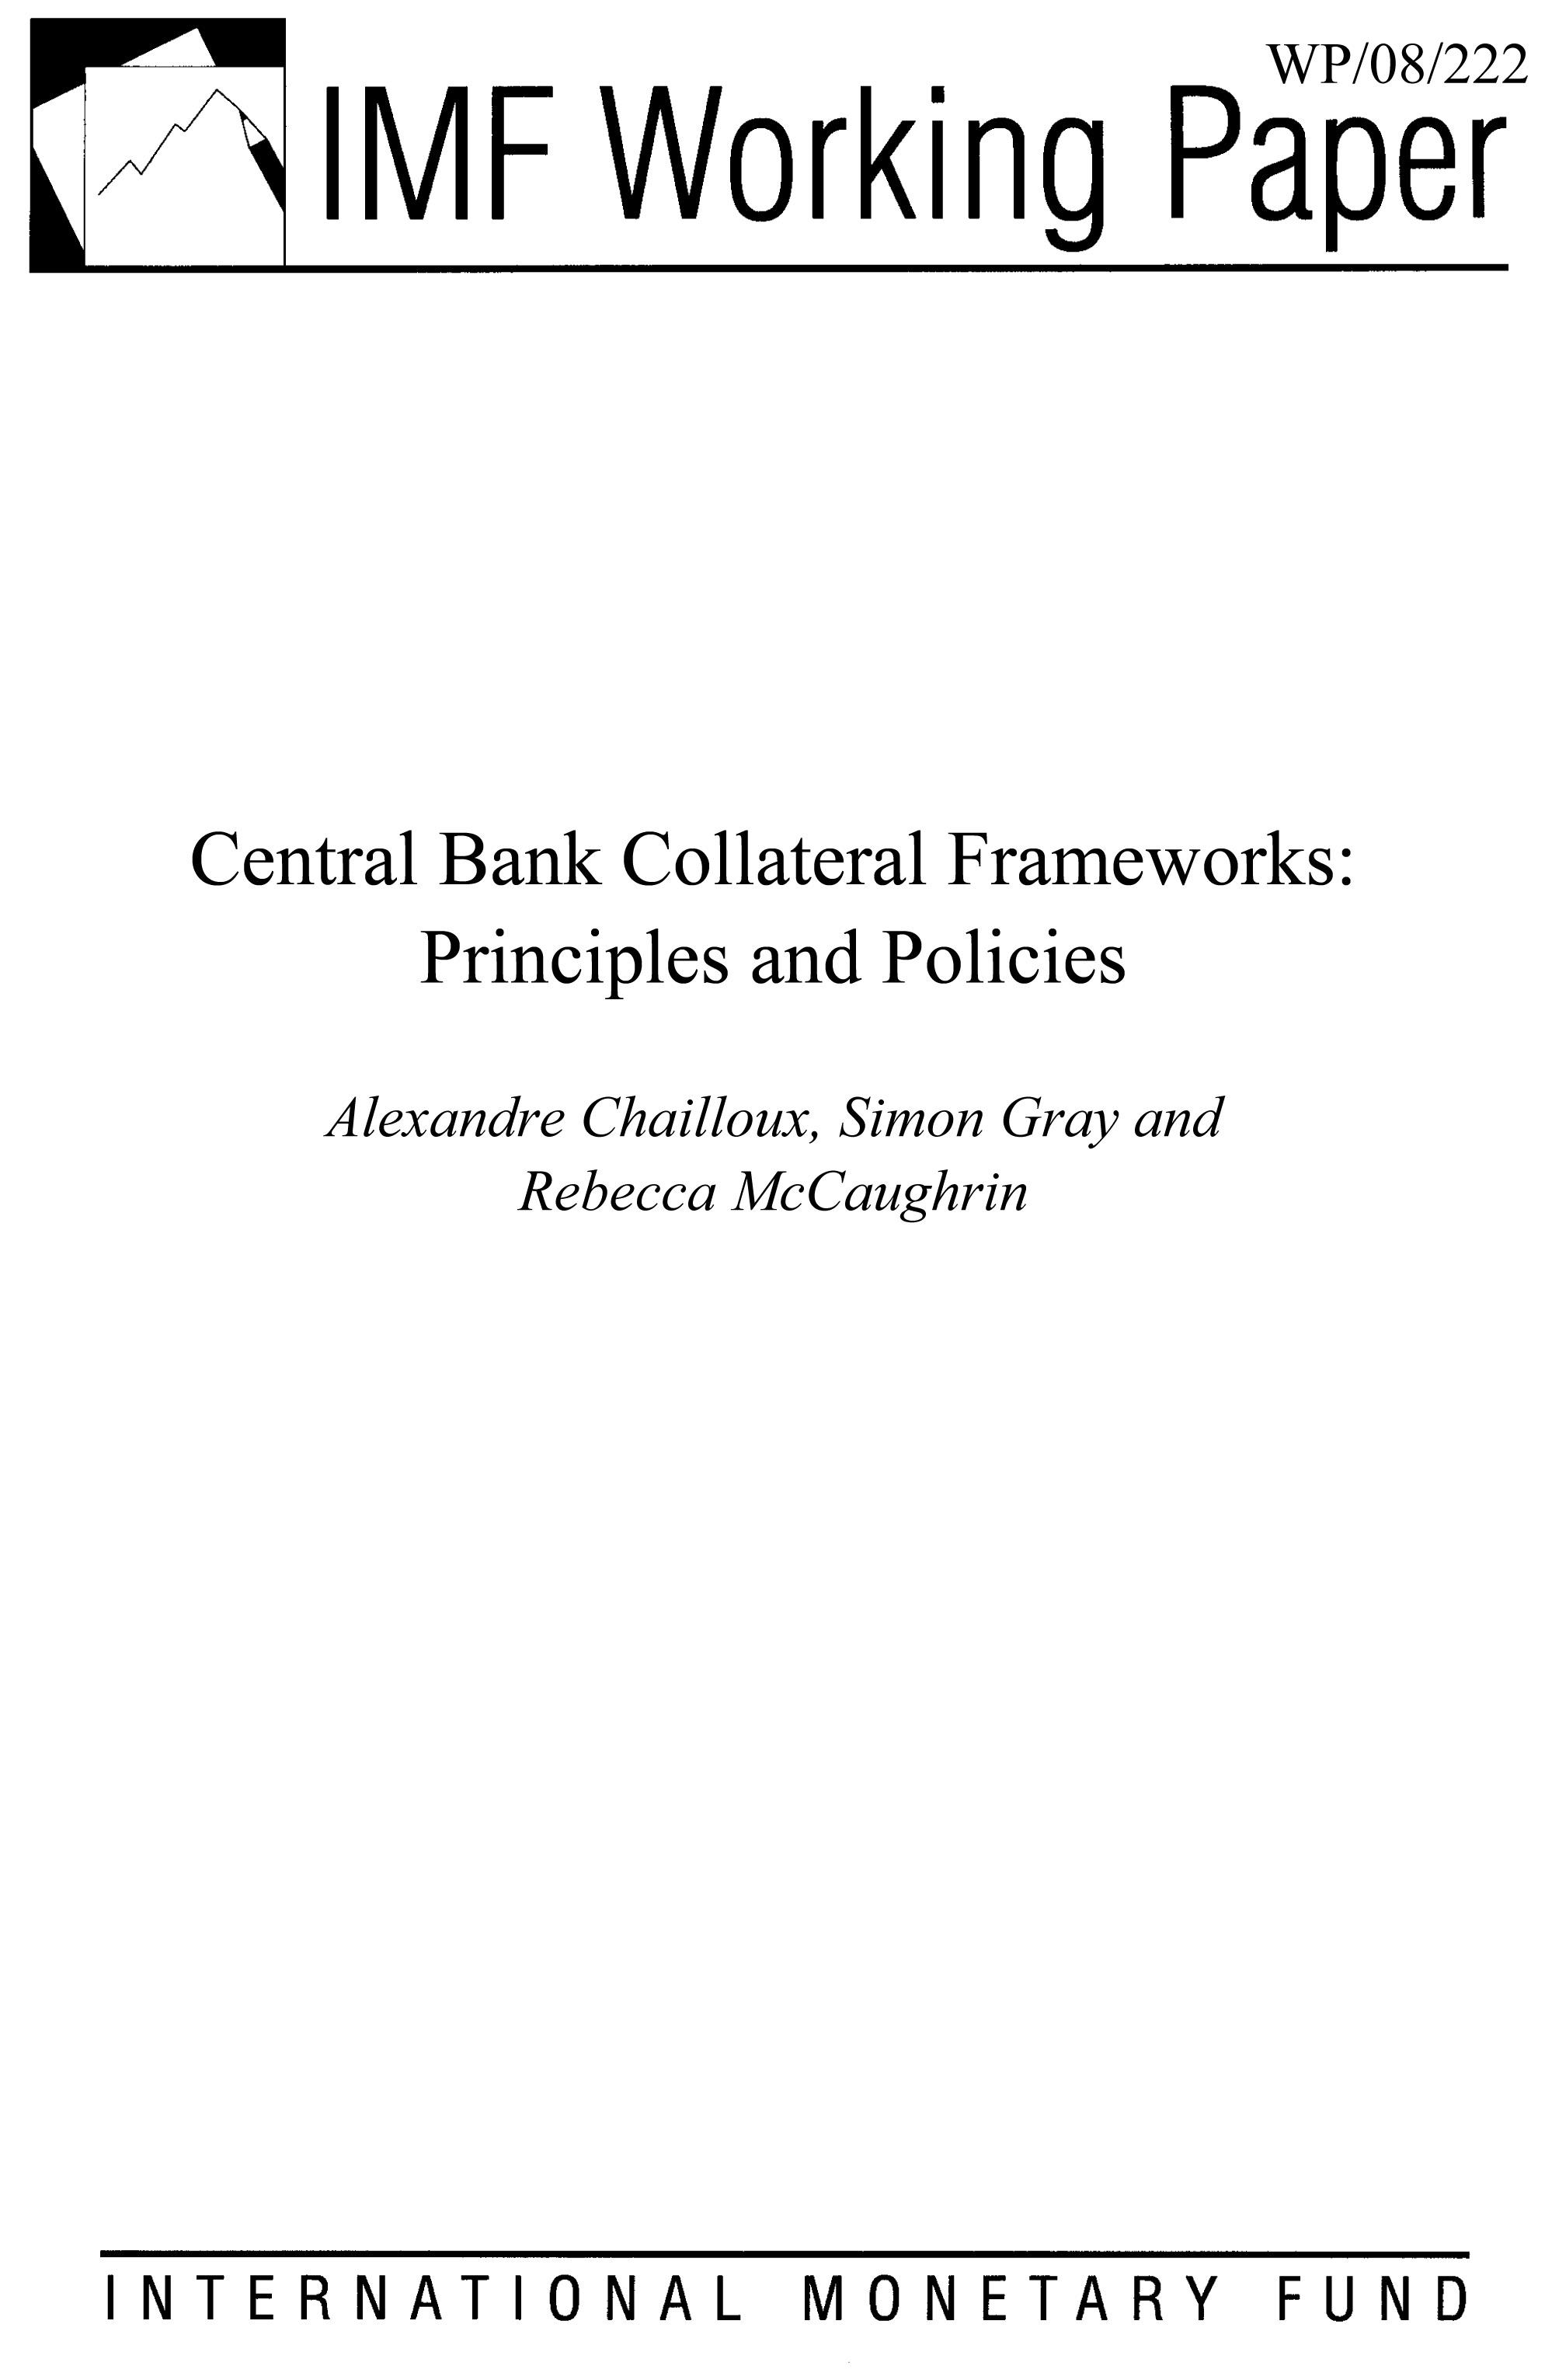 Central Bank Collateral Frameworks: Principles and Policies